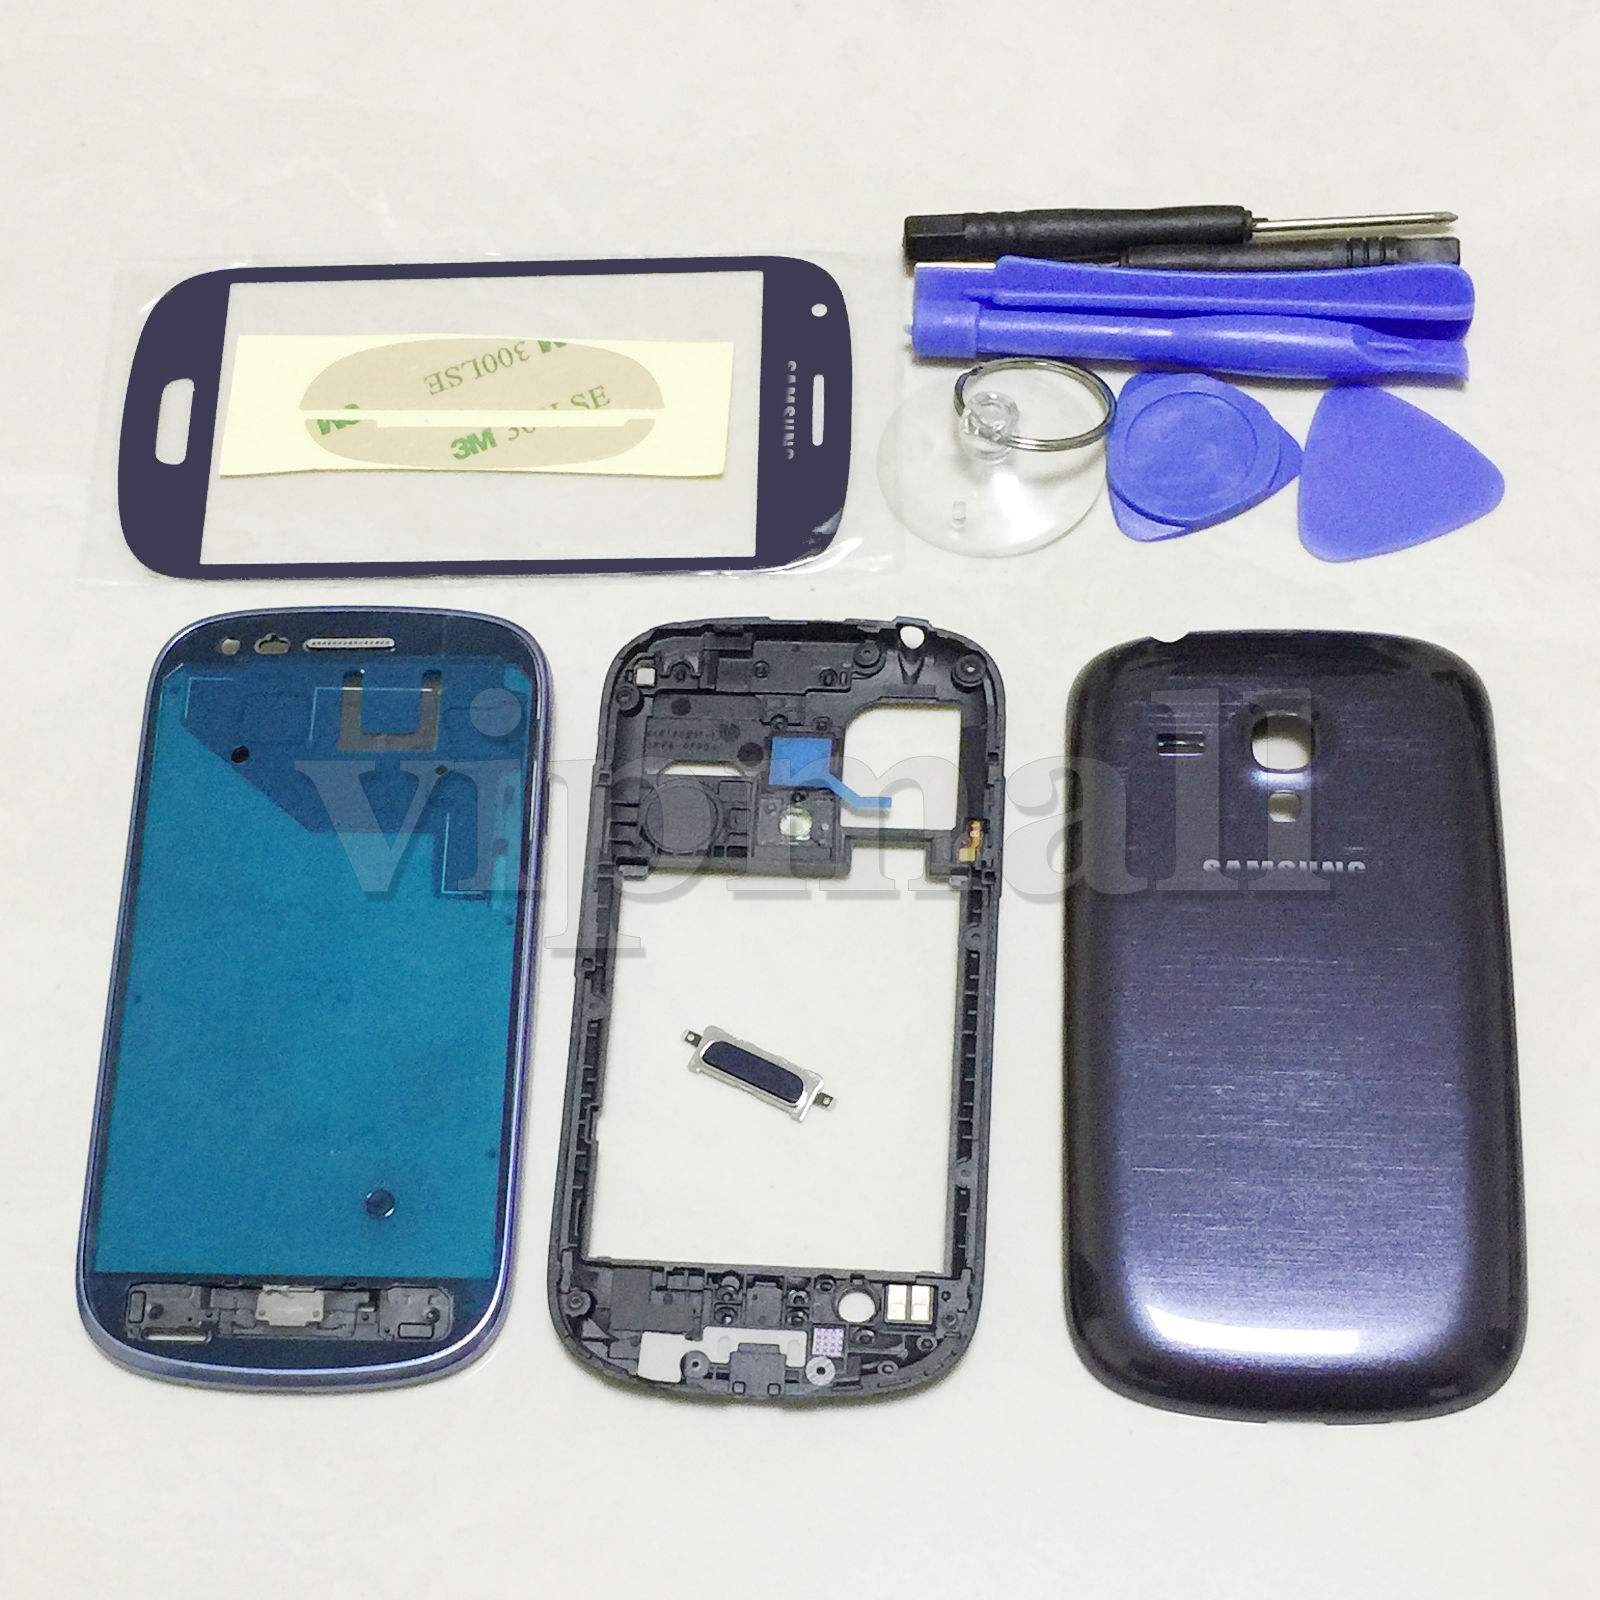 Blue Full Housing Case Screen Glass Cover Tool For Samsung Galaxy S3 mini I8190(China (Mainland))